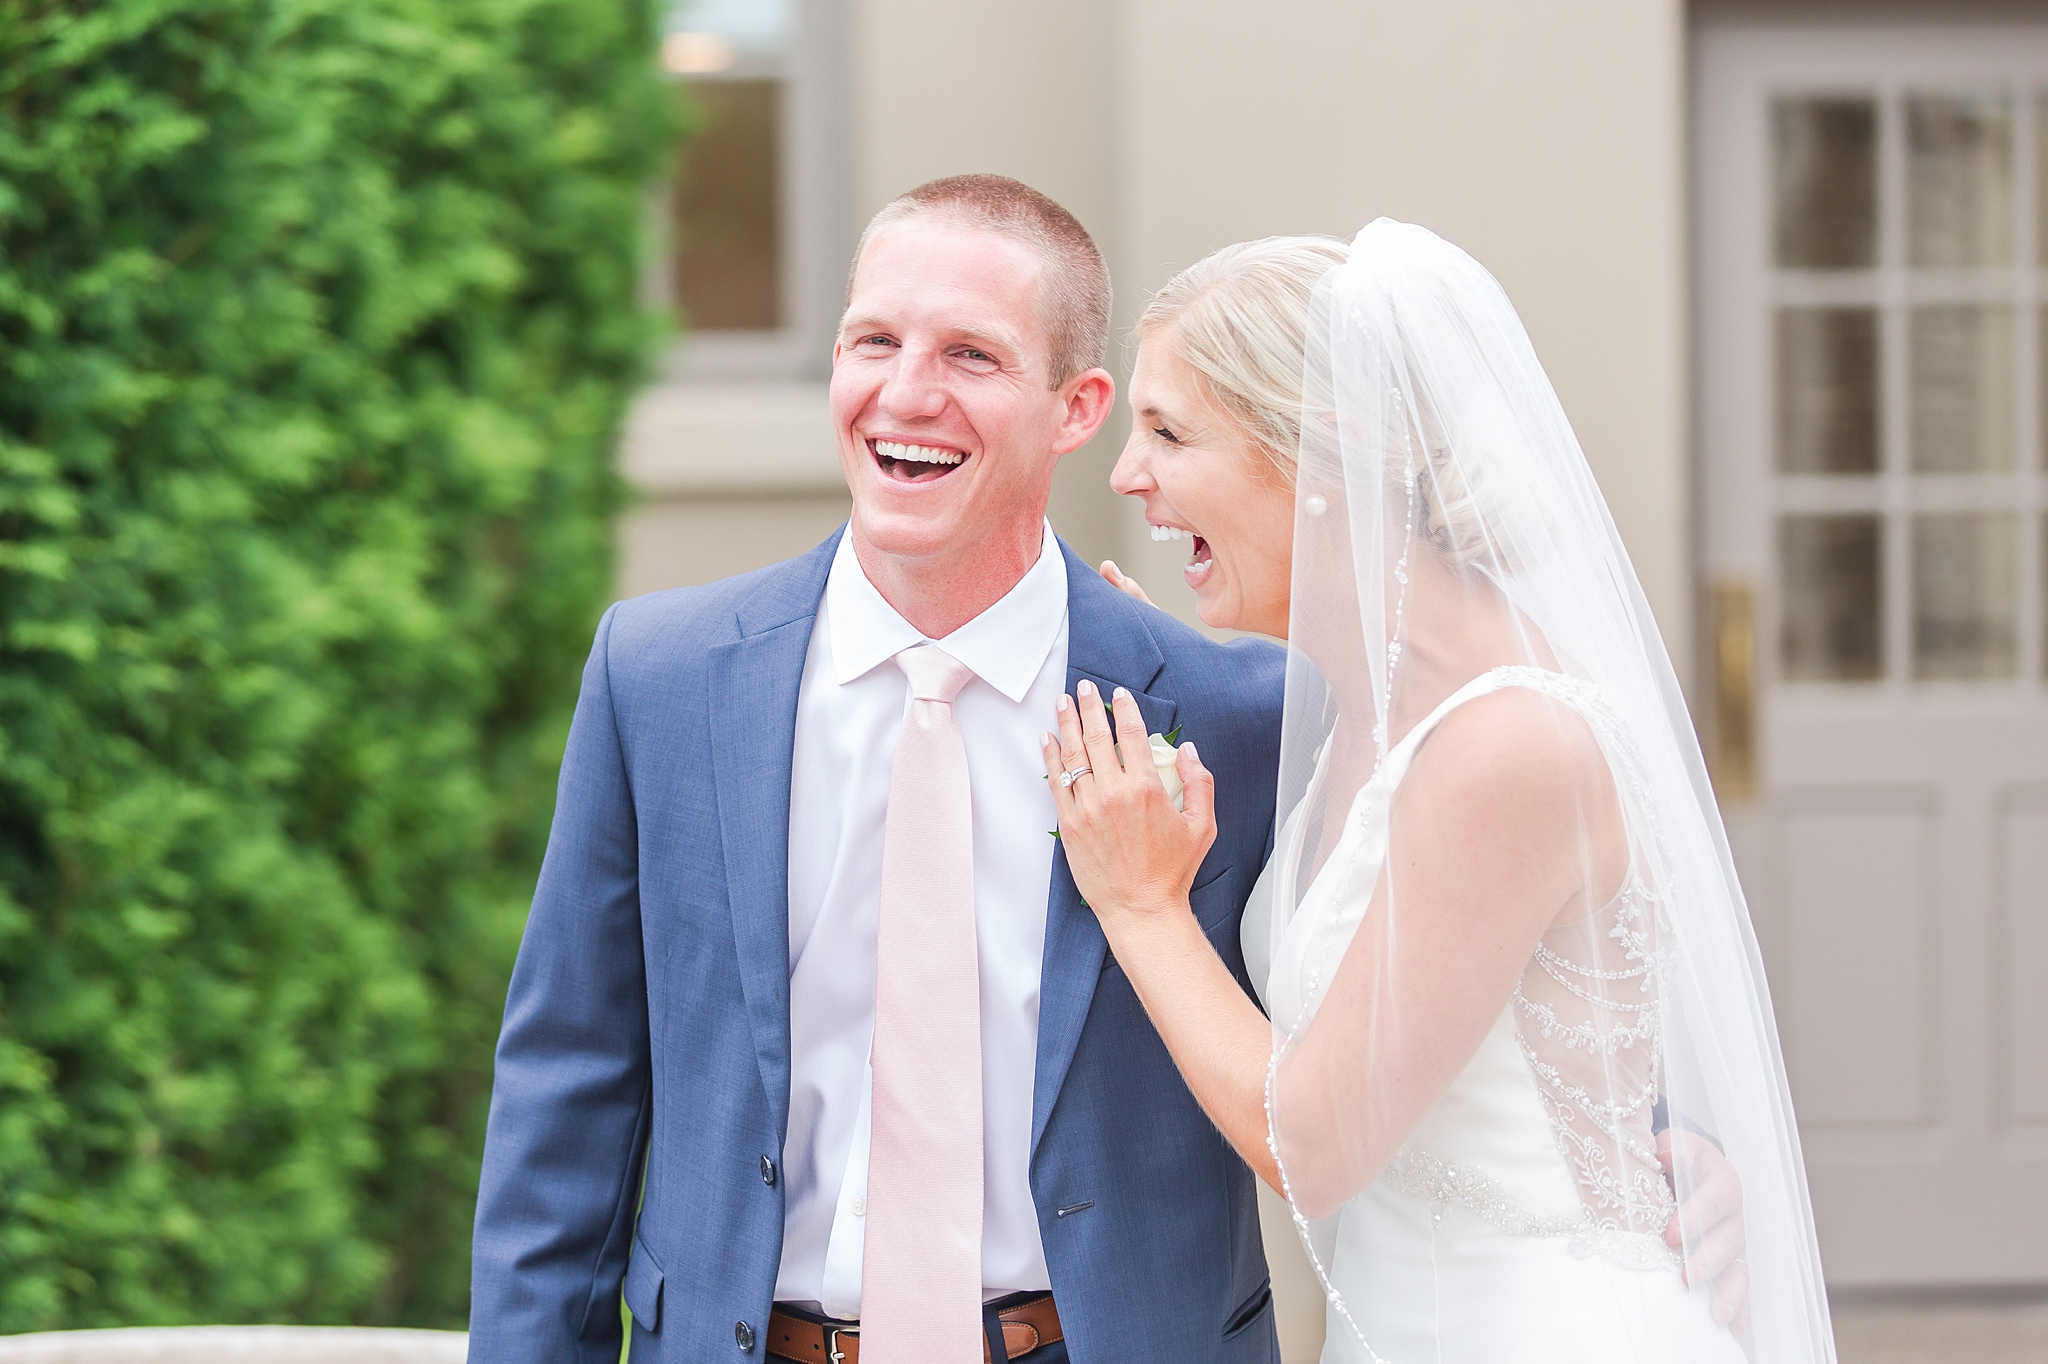 joyful-romantic-modern-laid-back-wedding-photography-in-detroit-ann-arbor-northern-mi-and-chicago-by-courtney-carolyn-photography_0006.jpg